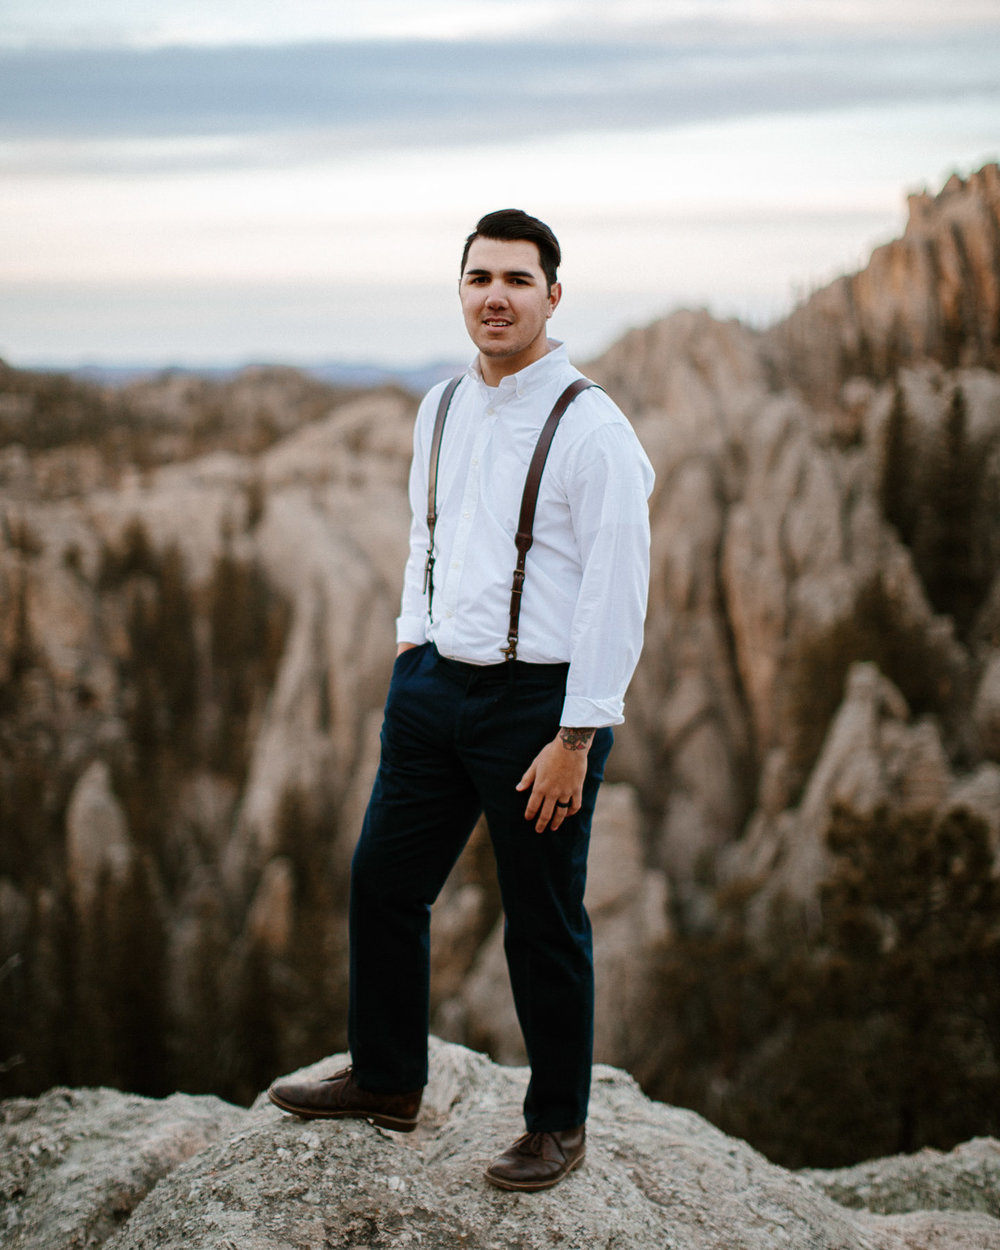 sioux-falls-black-hills-rapid-city-elopement-wedding-adventure-photographer-custer-sylvan-lake-53.jpg